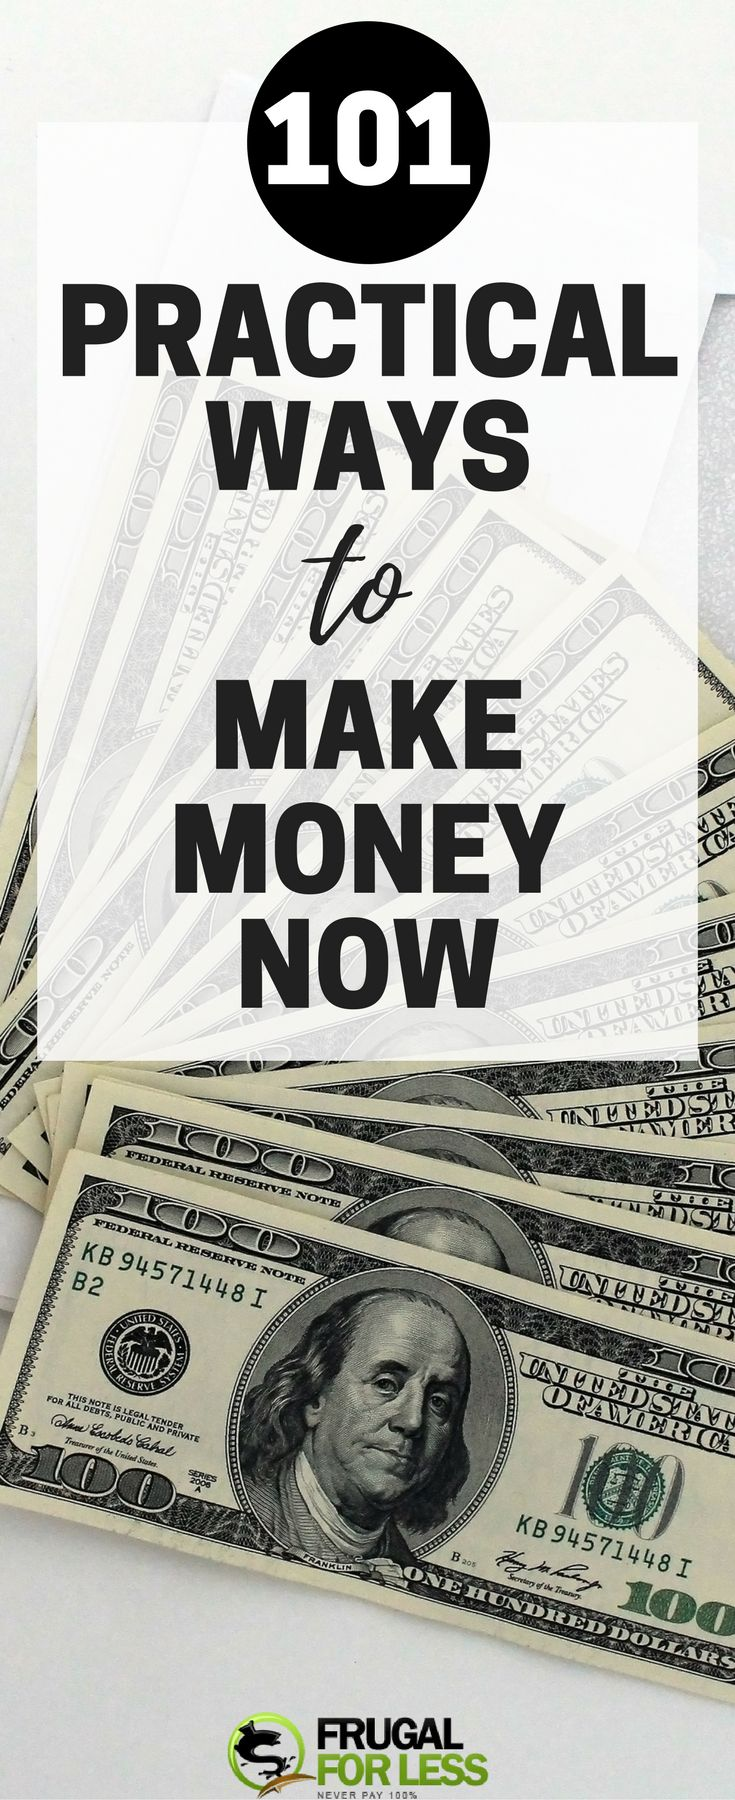 Make Money Now | Free Money | Work From Home | Make Money Online | Fast Cash | Quick Cash #MondayMotivation #moneyteam #moneytips